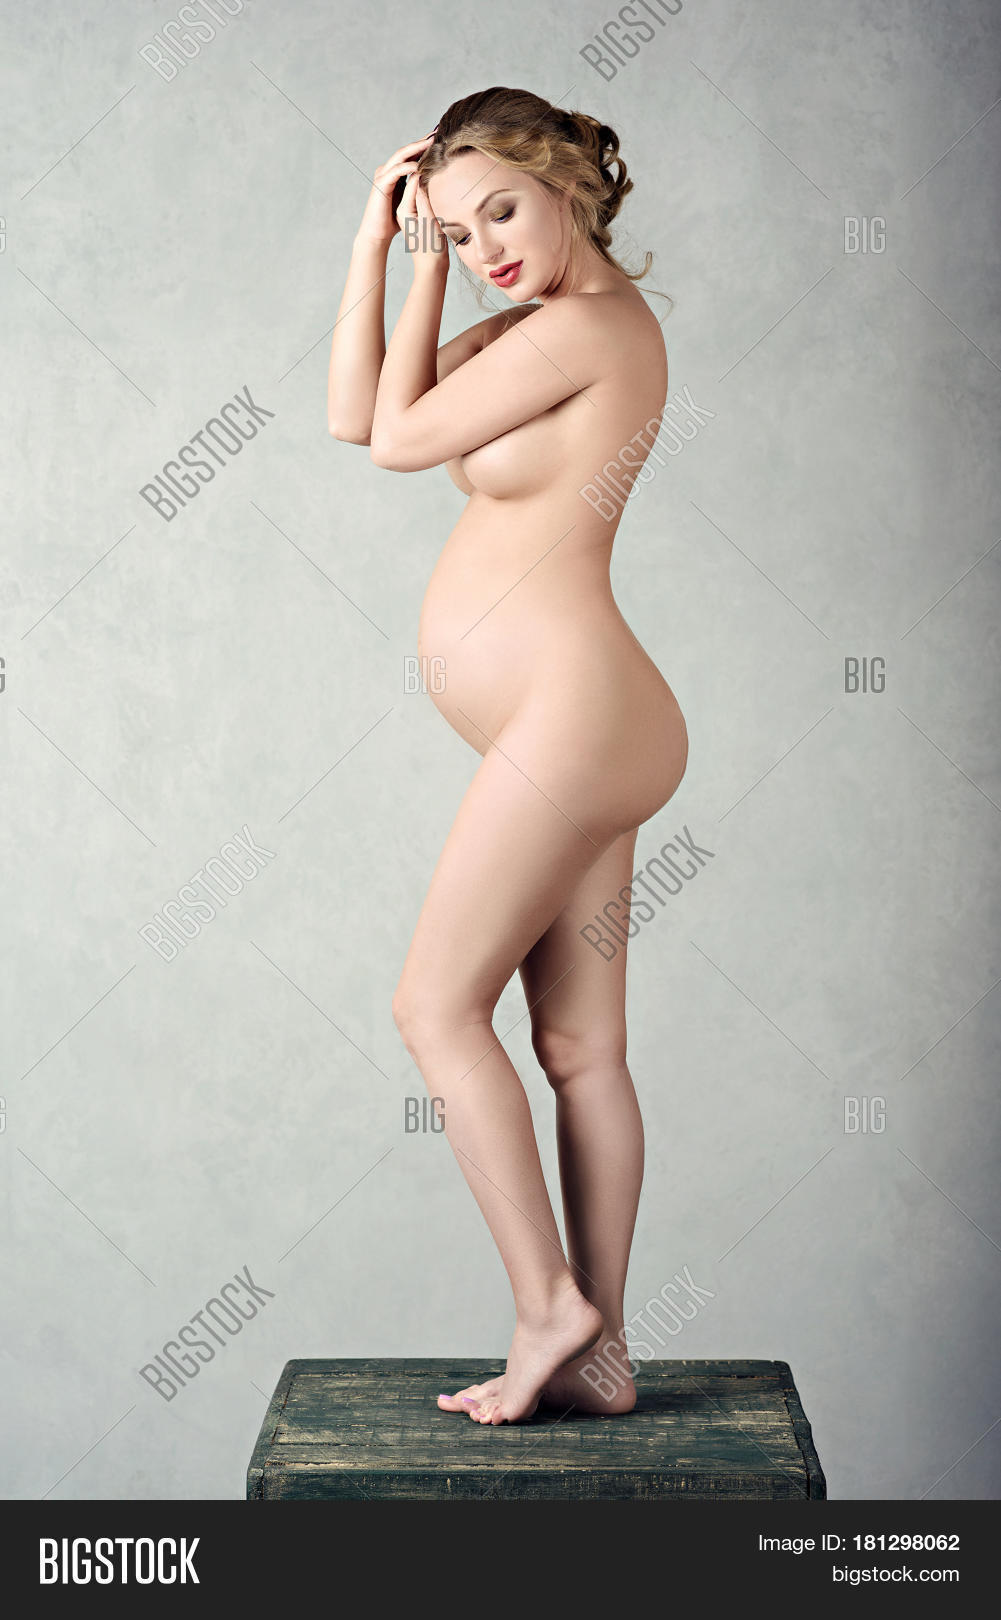 Beautiful pregnancy woman naked